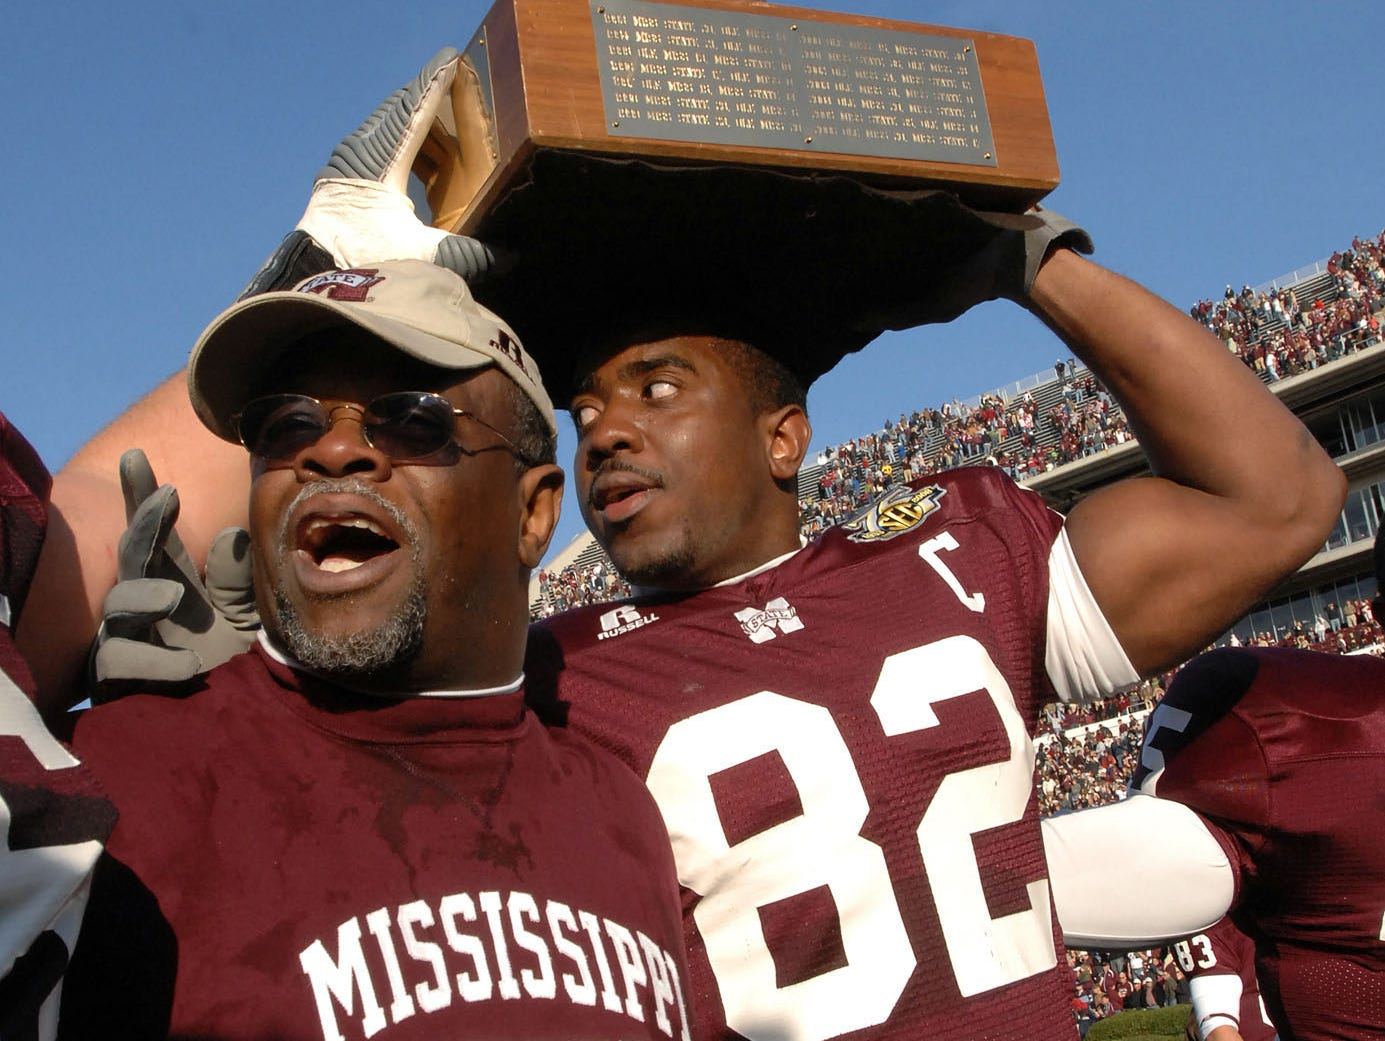 Mississippi State Coach Sylvester Croom and TE Jason Husband celebrate State's win with the Egg Bowl Trophy in 2007.